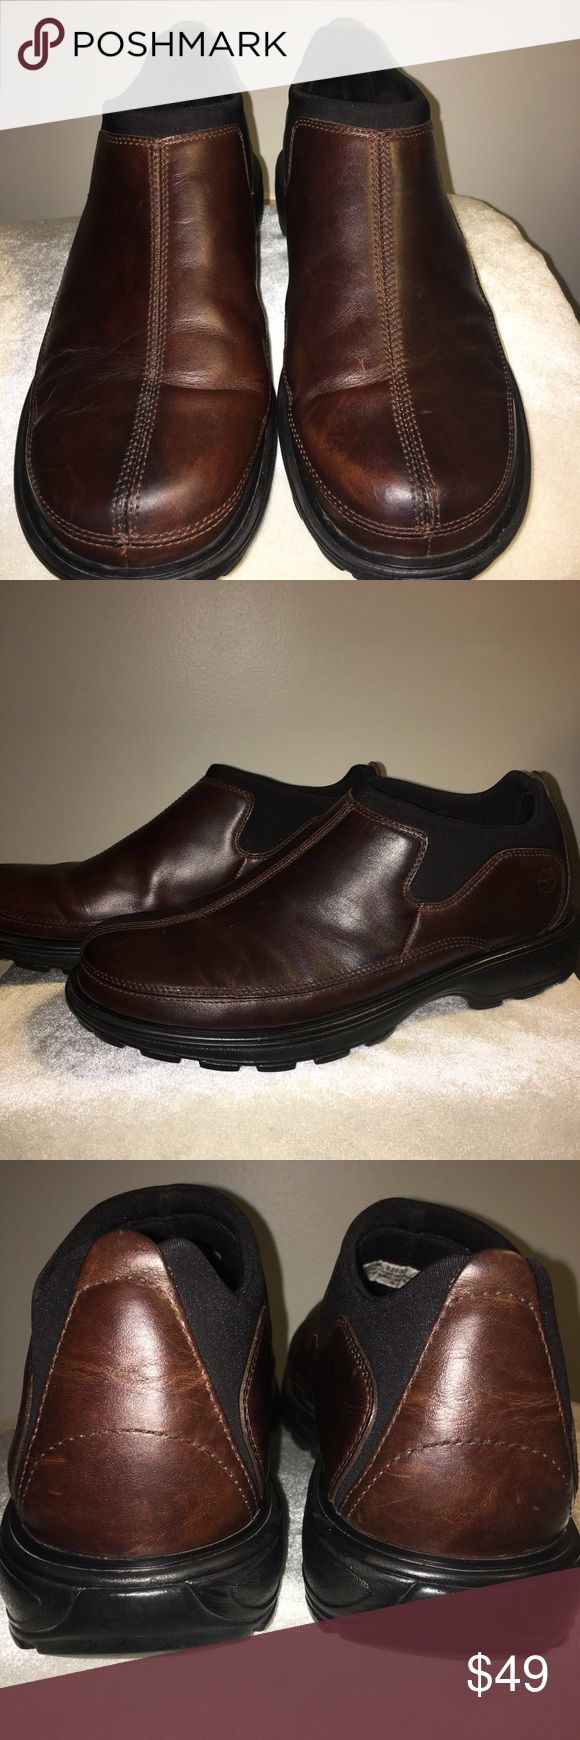 Timberland brown leather soft comfort shoe sz 10.5 Timberland brown leather soft comfort shoe size 10.5 Timberland Shoes Loafers & Slip-Ons